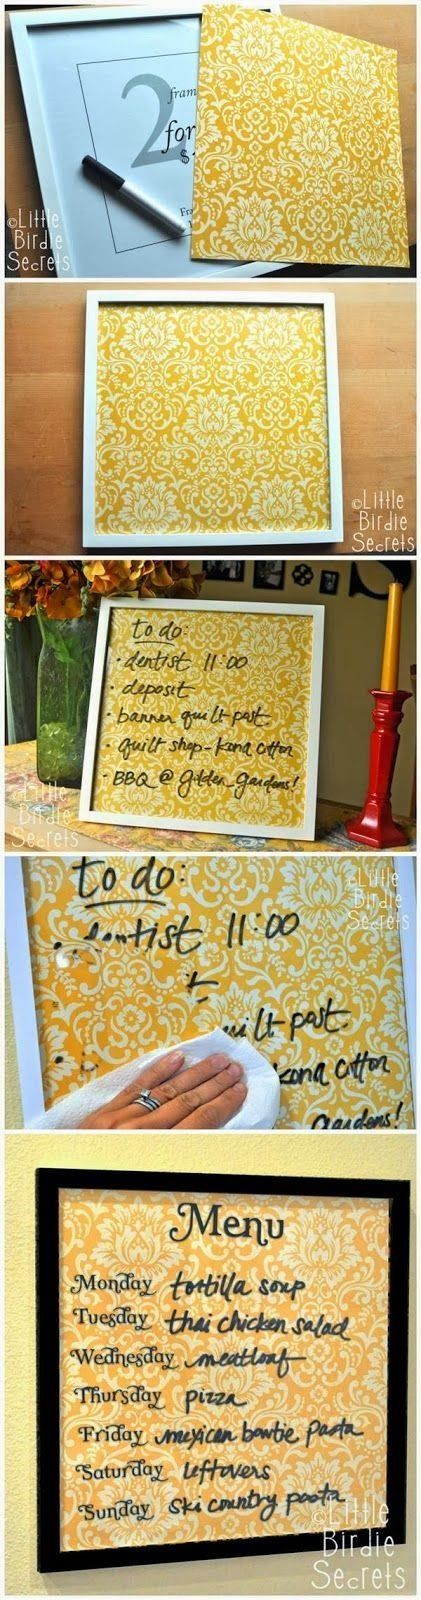 <3 this idea to stay on track with a meal plan